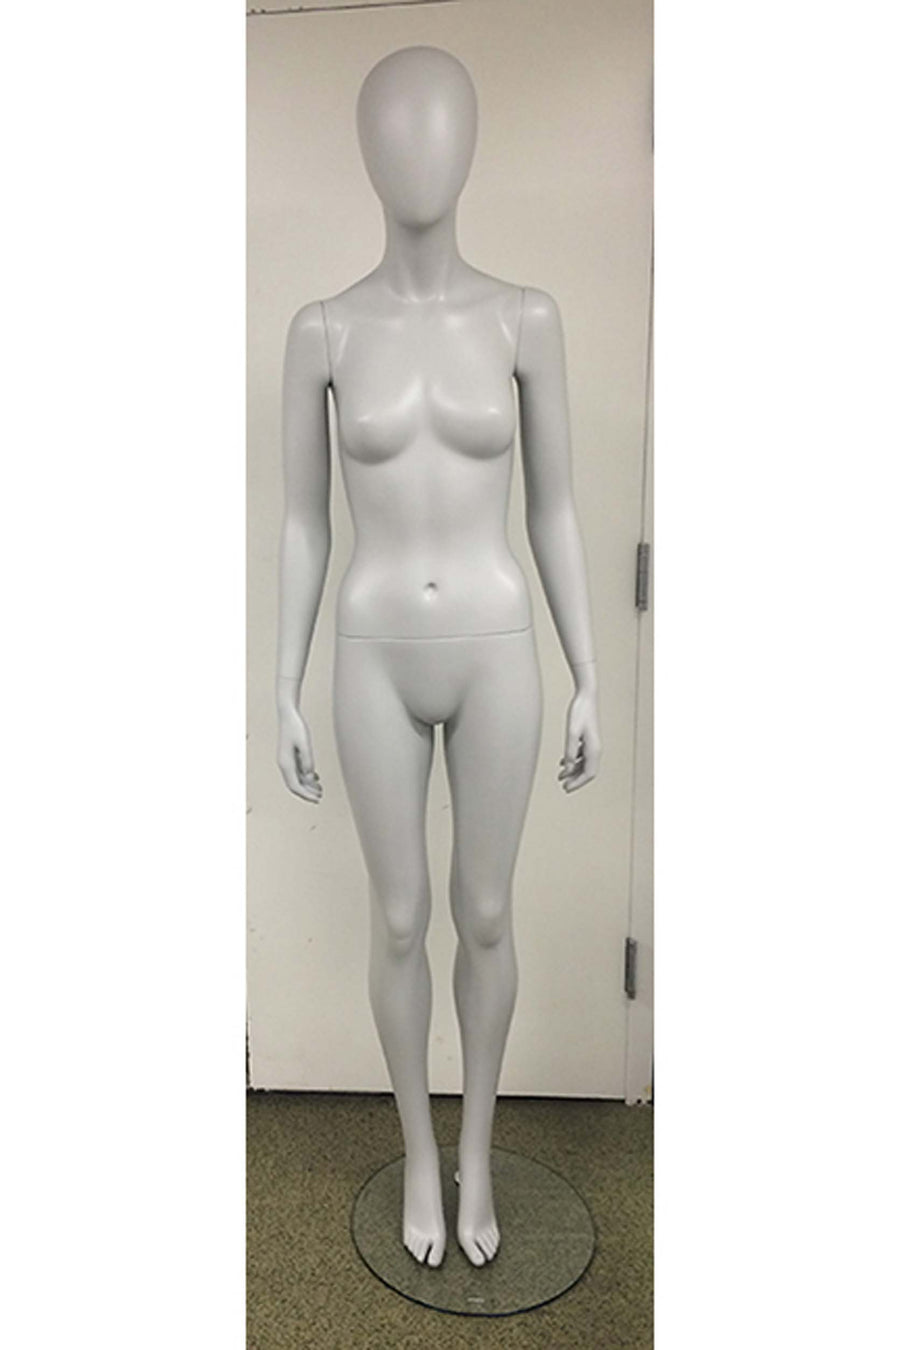 matte gray female mannequin with arms at sides and legs together